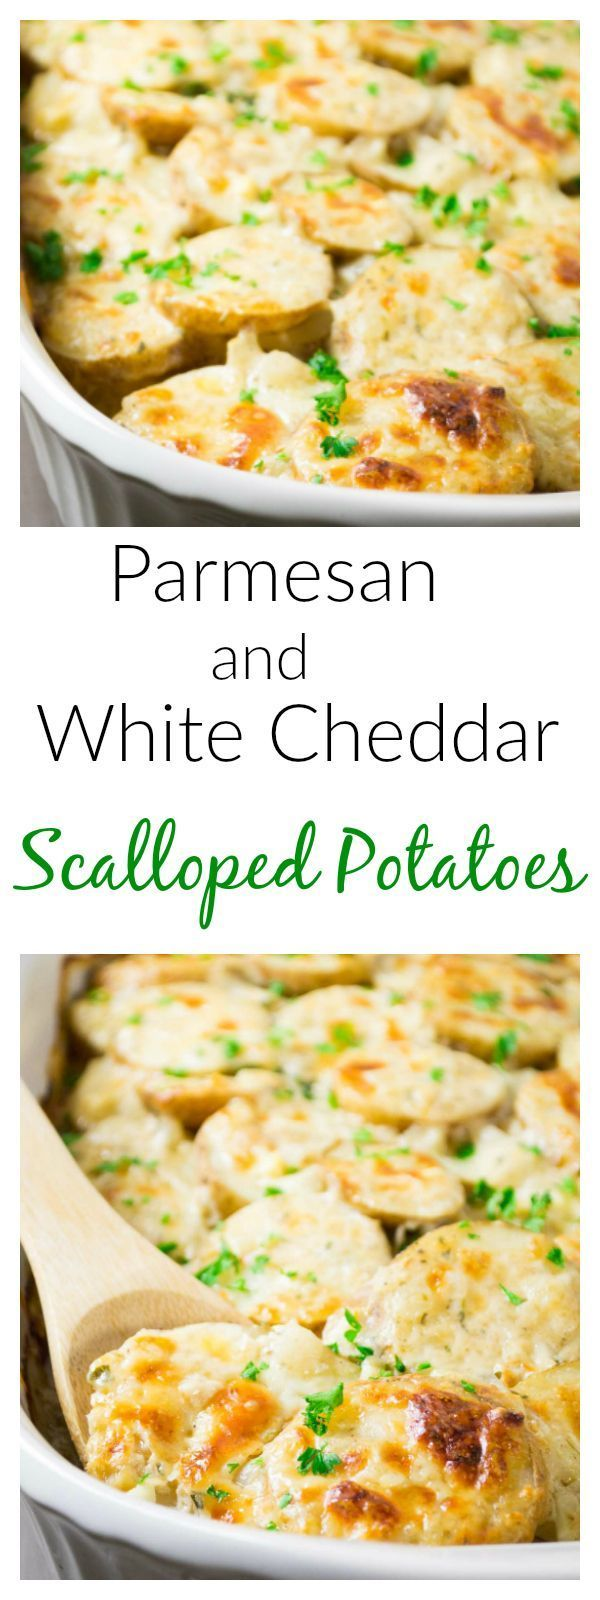 parmesan and white cheddar scalloped potatoes